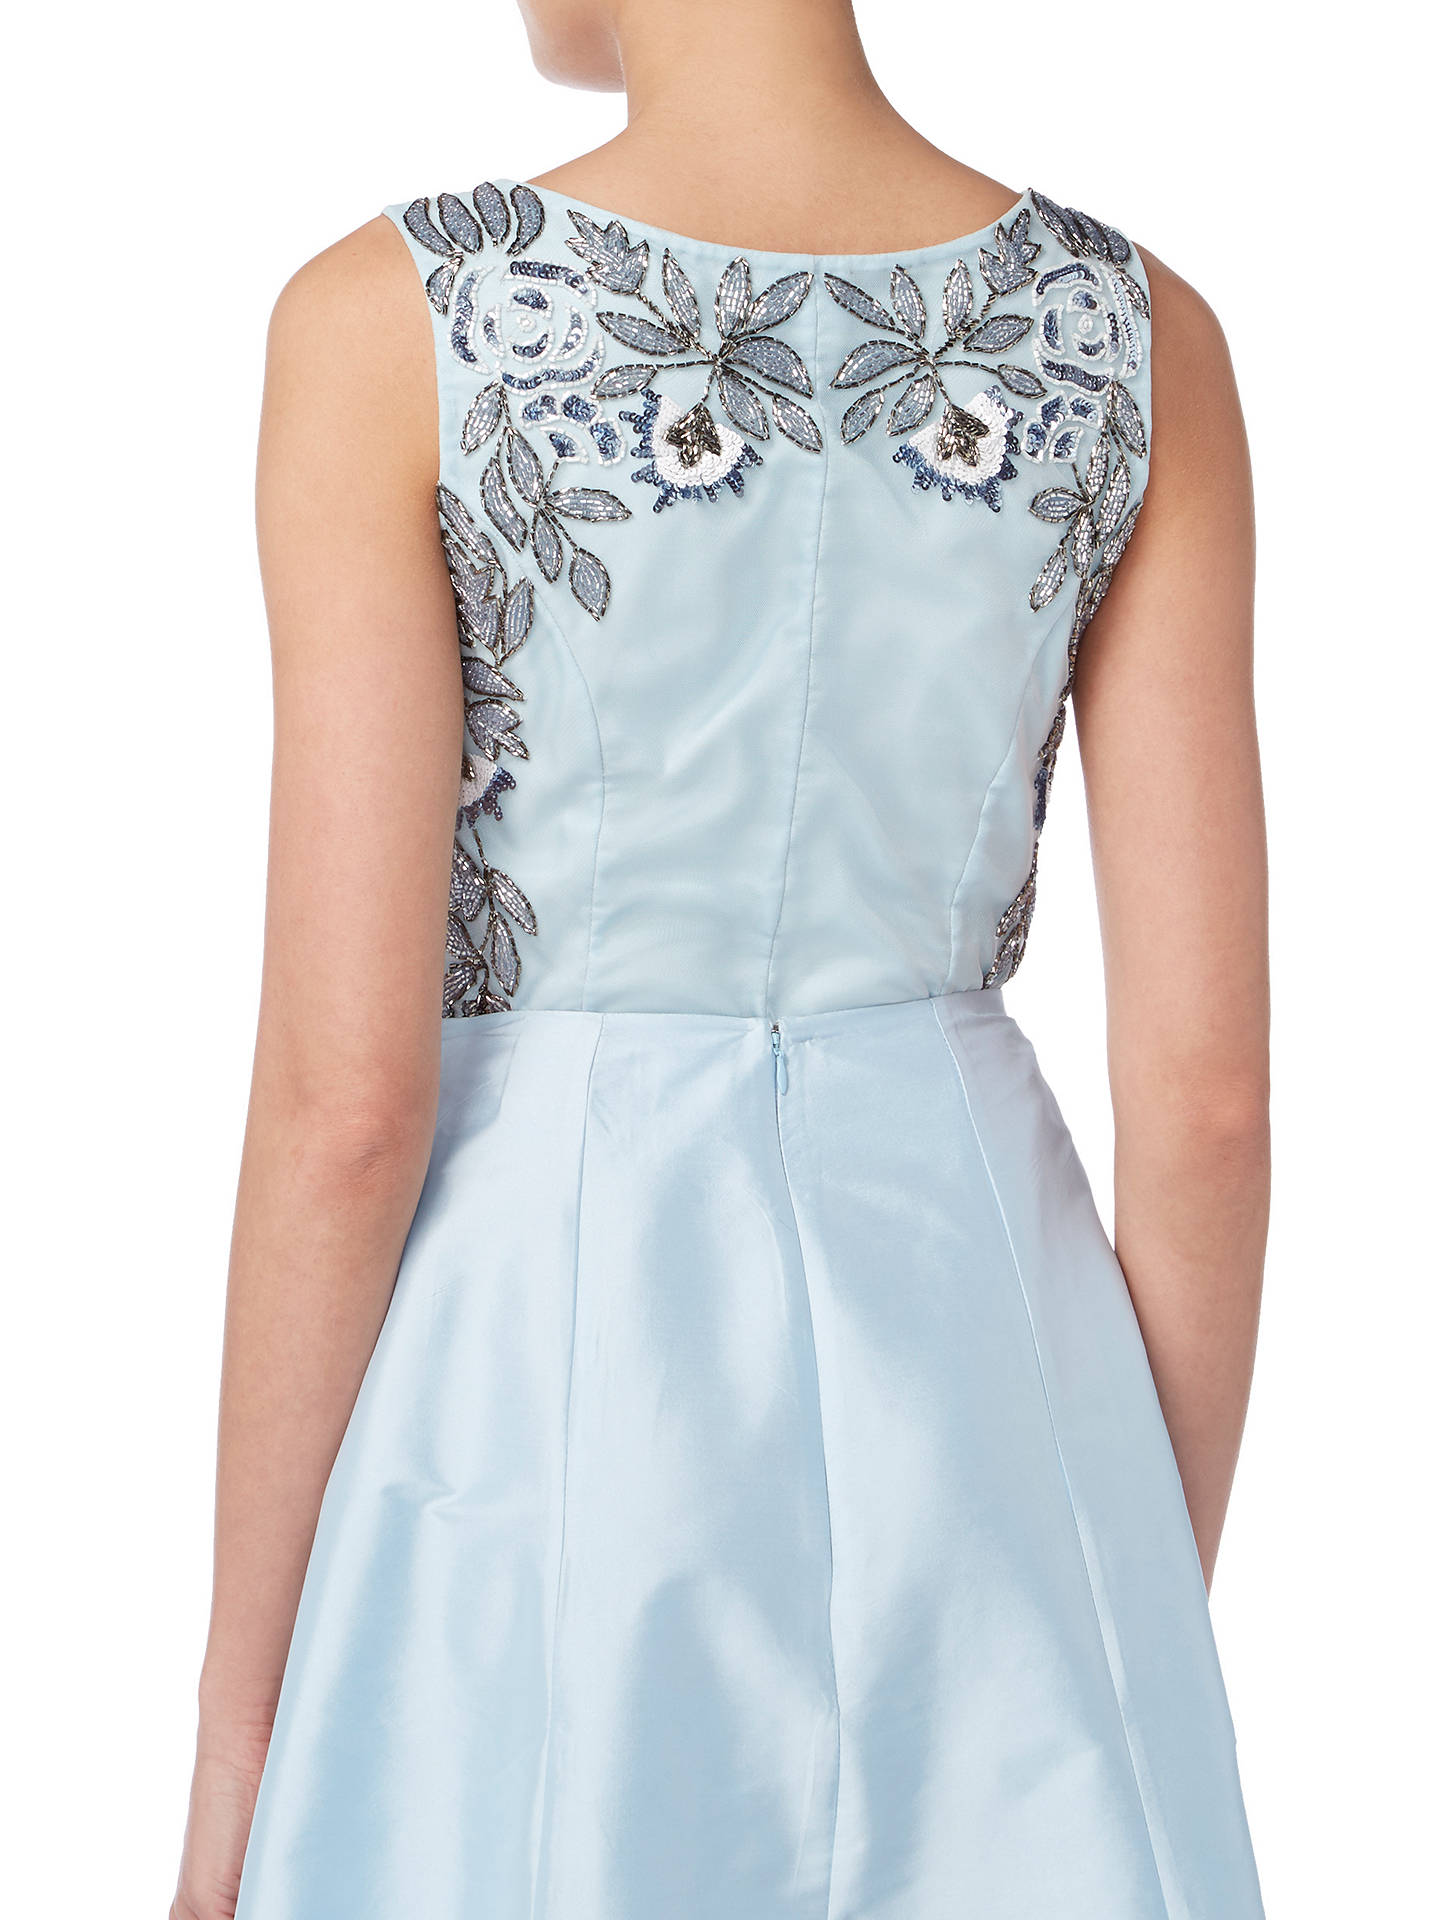 BuyRaishma Floral Embroidered Sleeveless Crop Top, Blue, 8 Online at johnlewis.com